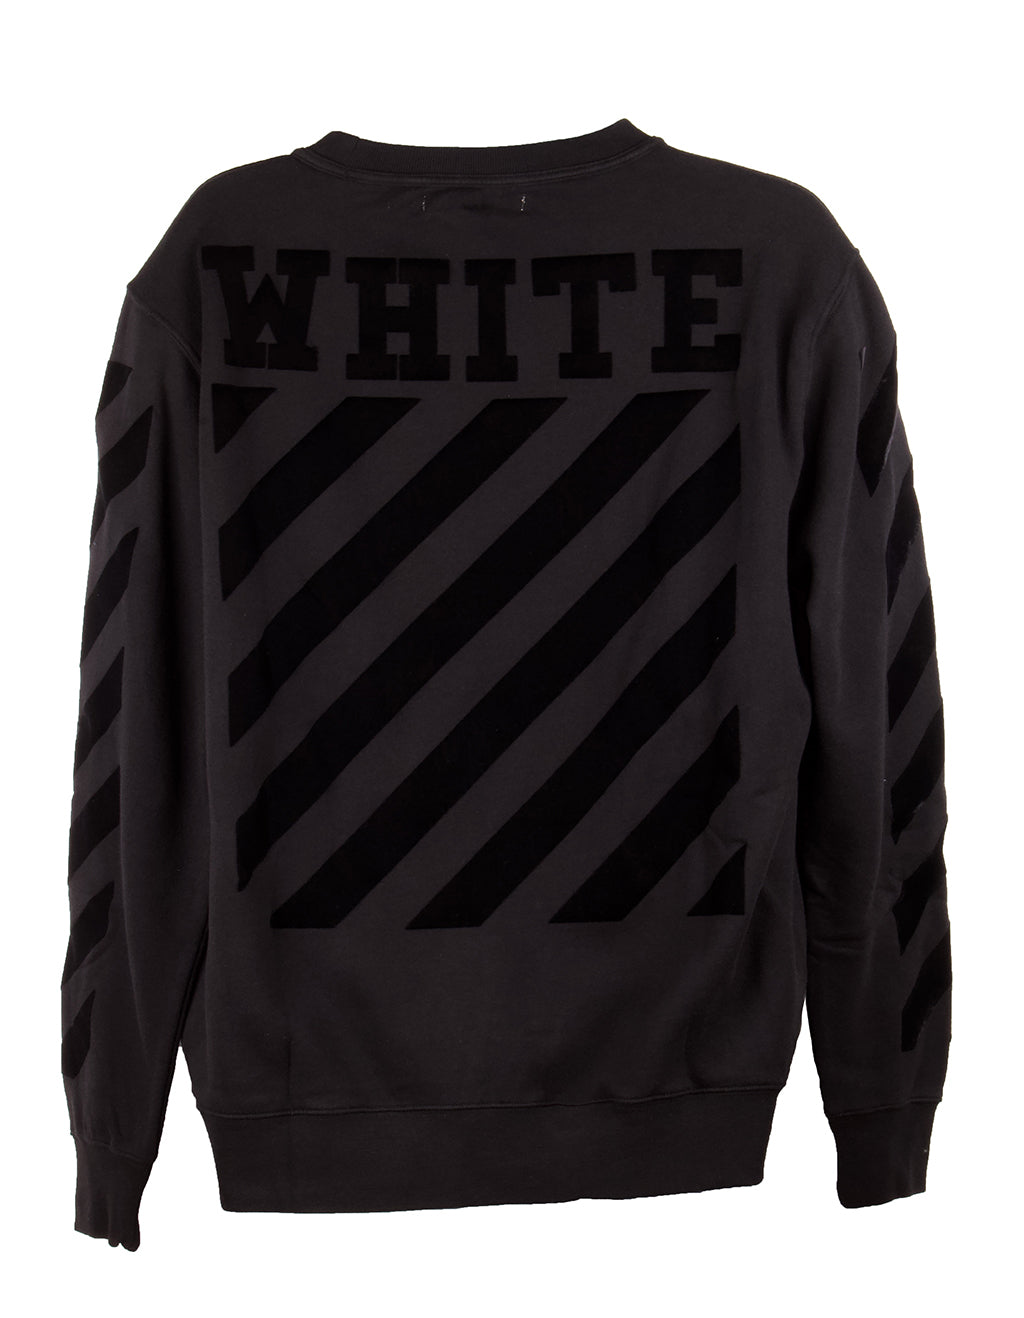 Off-White Black Two-Tone Crewneck Sweater